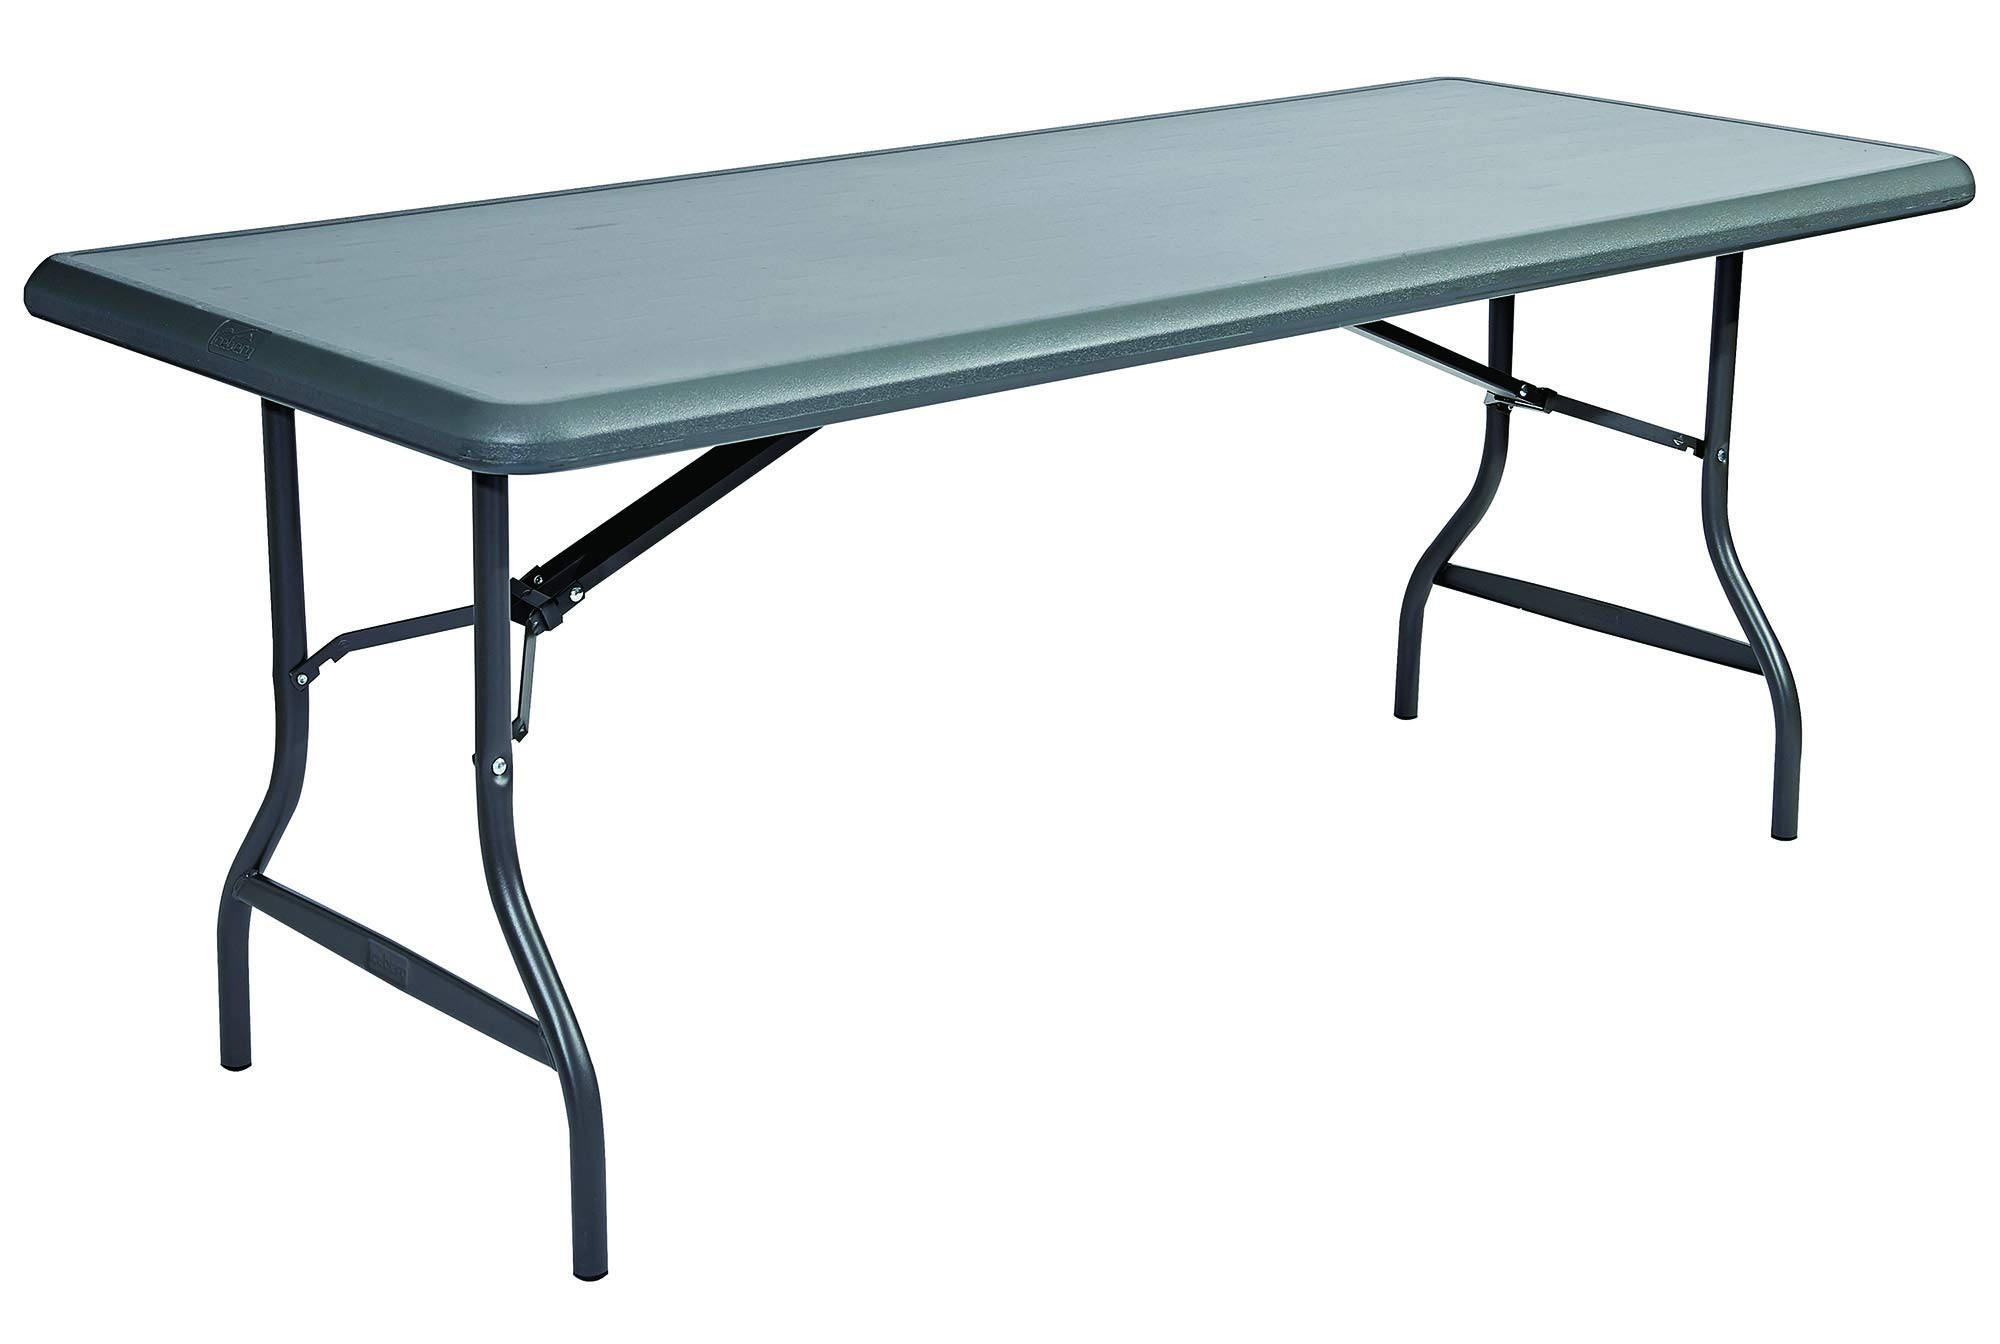 Iceberg ICE65227 IndestrucTable TOO 1200 Series Steel Legs Plastic Folding Table, 2000 lbs Capacity, 72'' Length x 30'' Width x 29'' Height, Charcoal by Iceberg